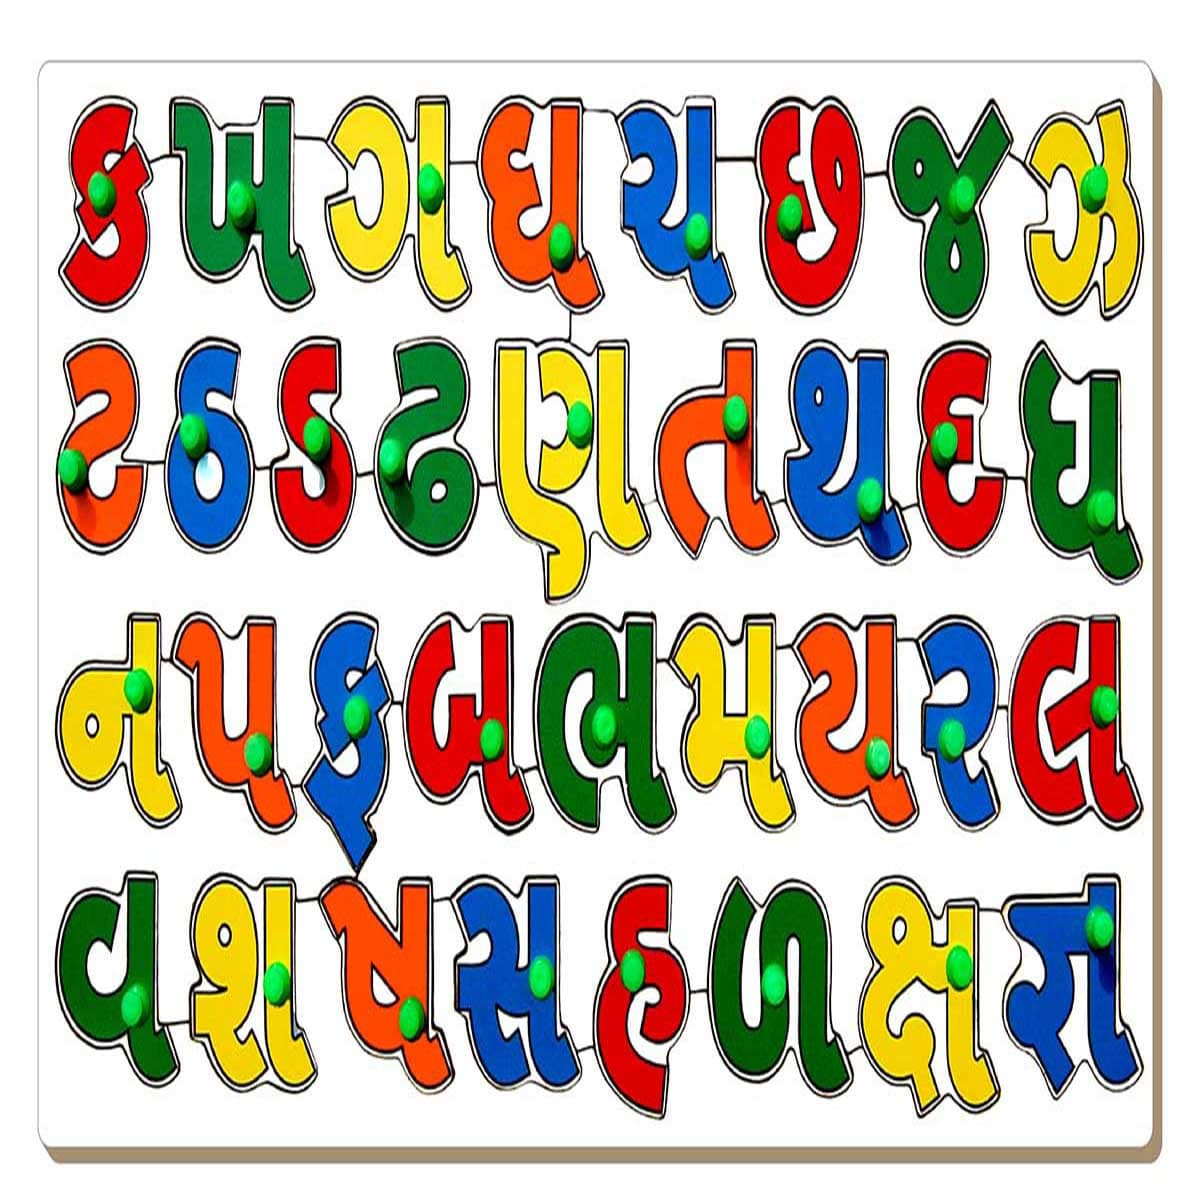 Free Download Gujarati Alphabet Images Quote Images Hd Free